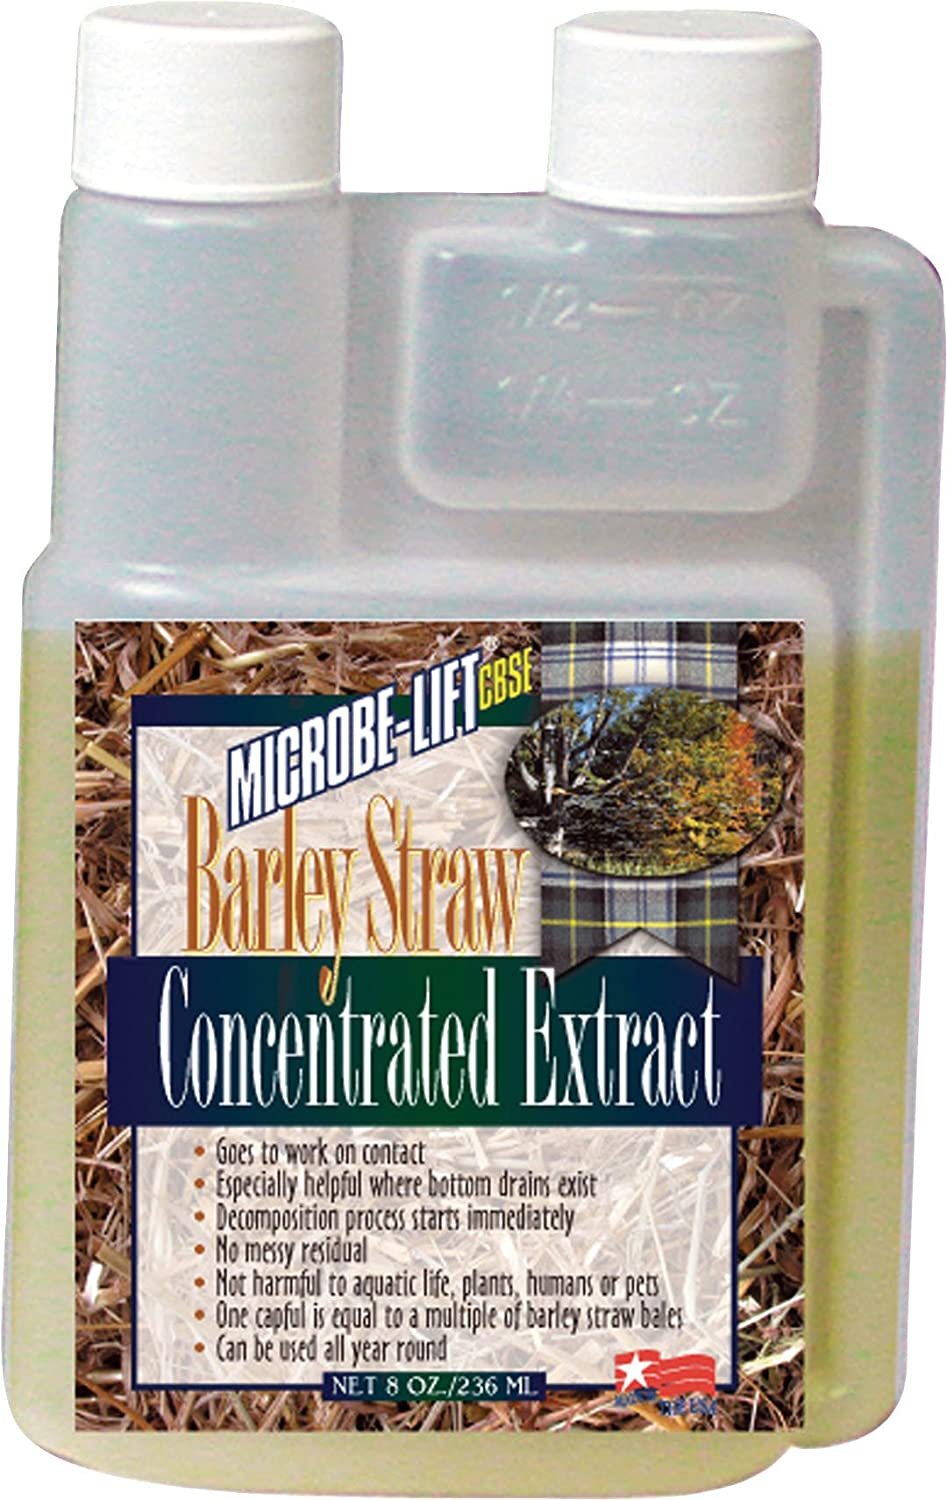 Ecological Laboratories Microbe-Lift Barley SALENEW very popular Concentrated wholesale Straw E